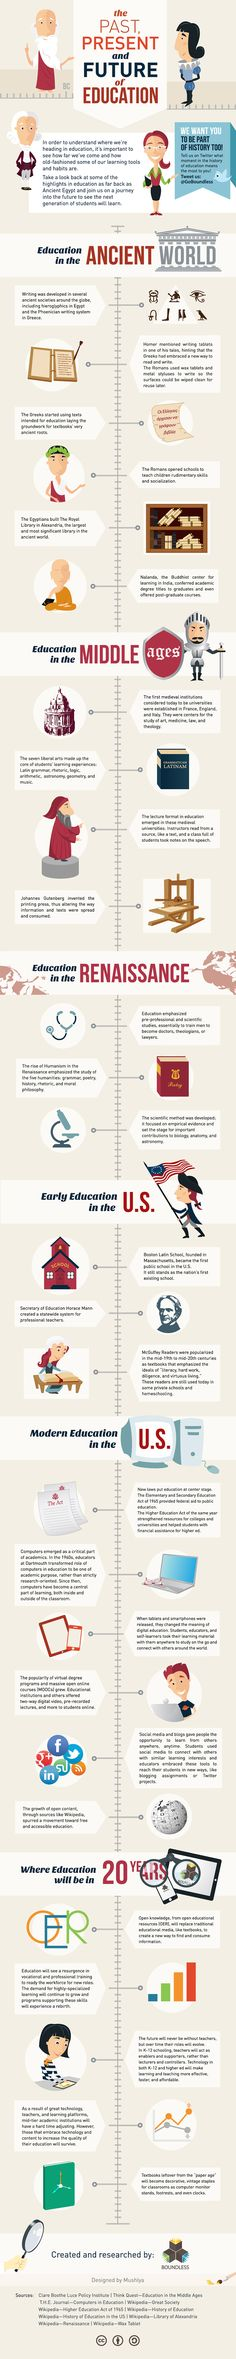 The Past, present and future of Education  #infographic